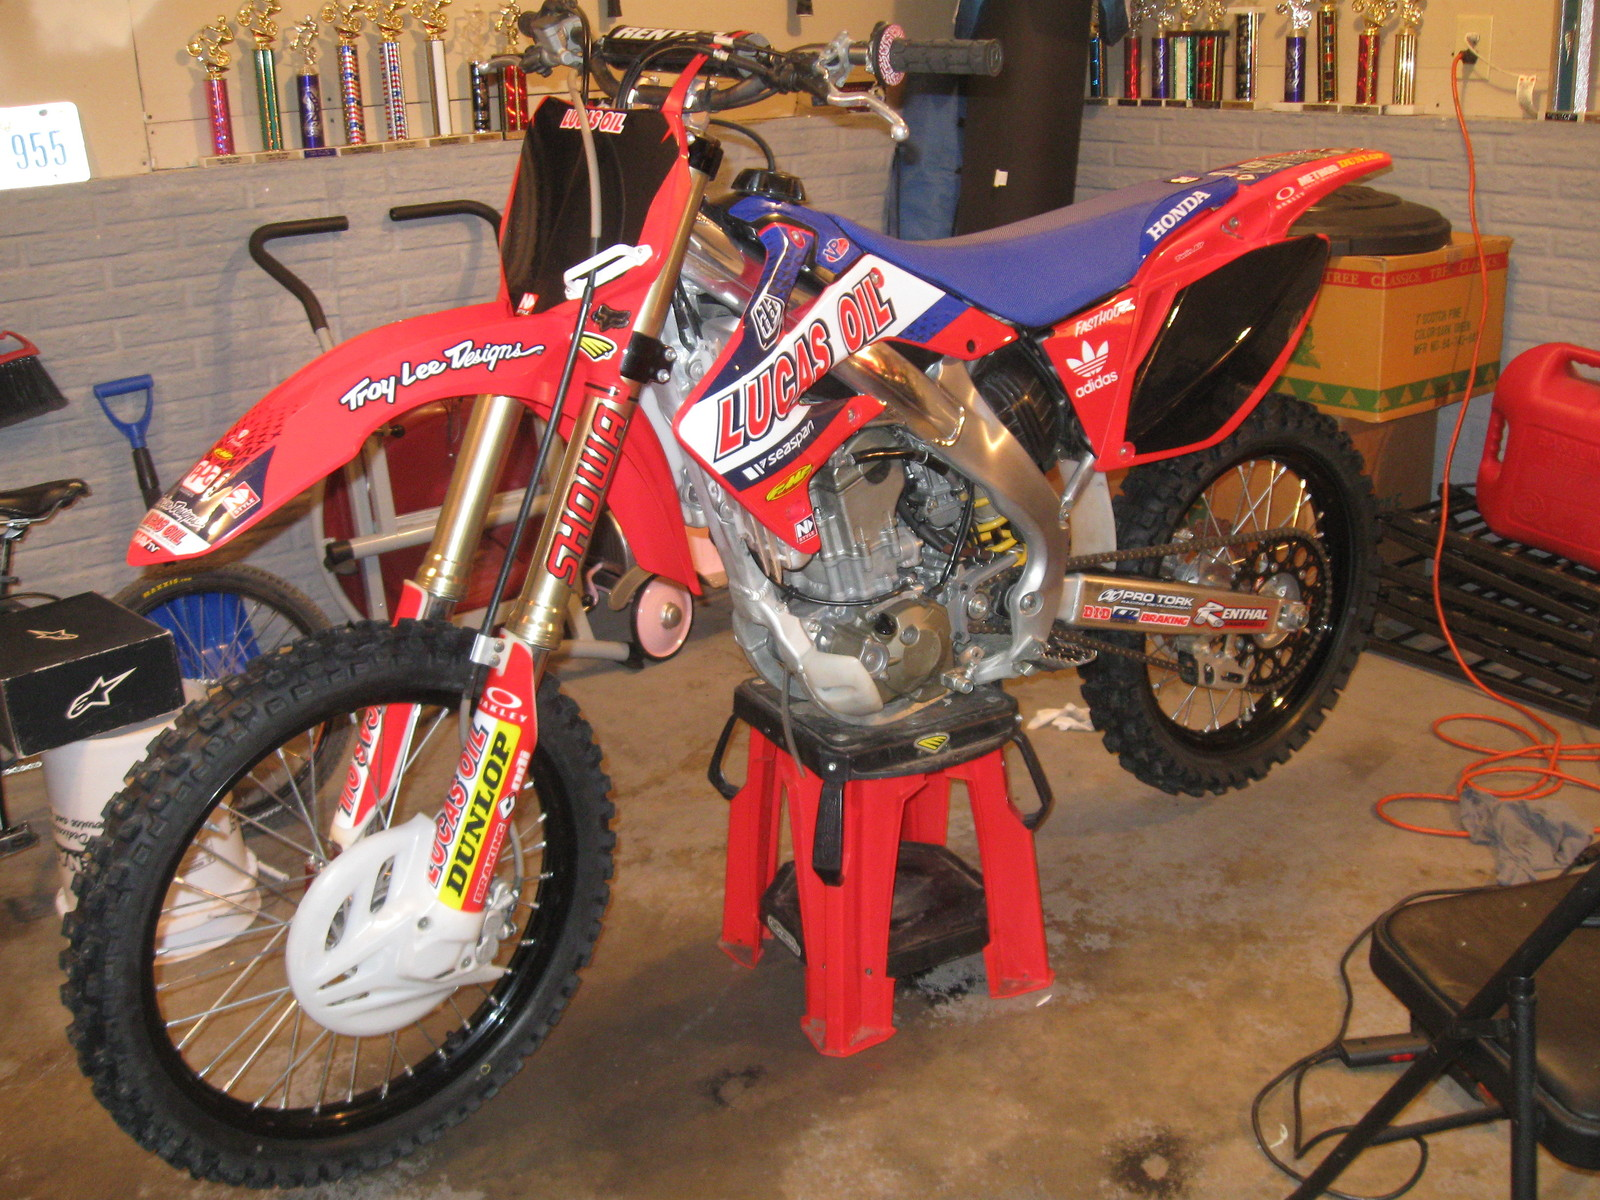 Mirramaxx S 2008 Crf250r Mirramaxx S Bike Check Vital Mx